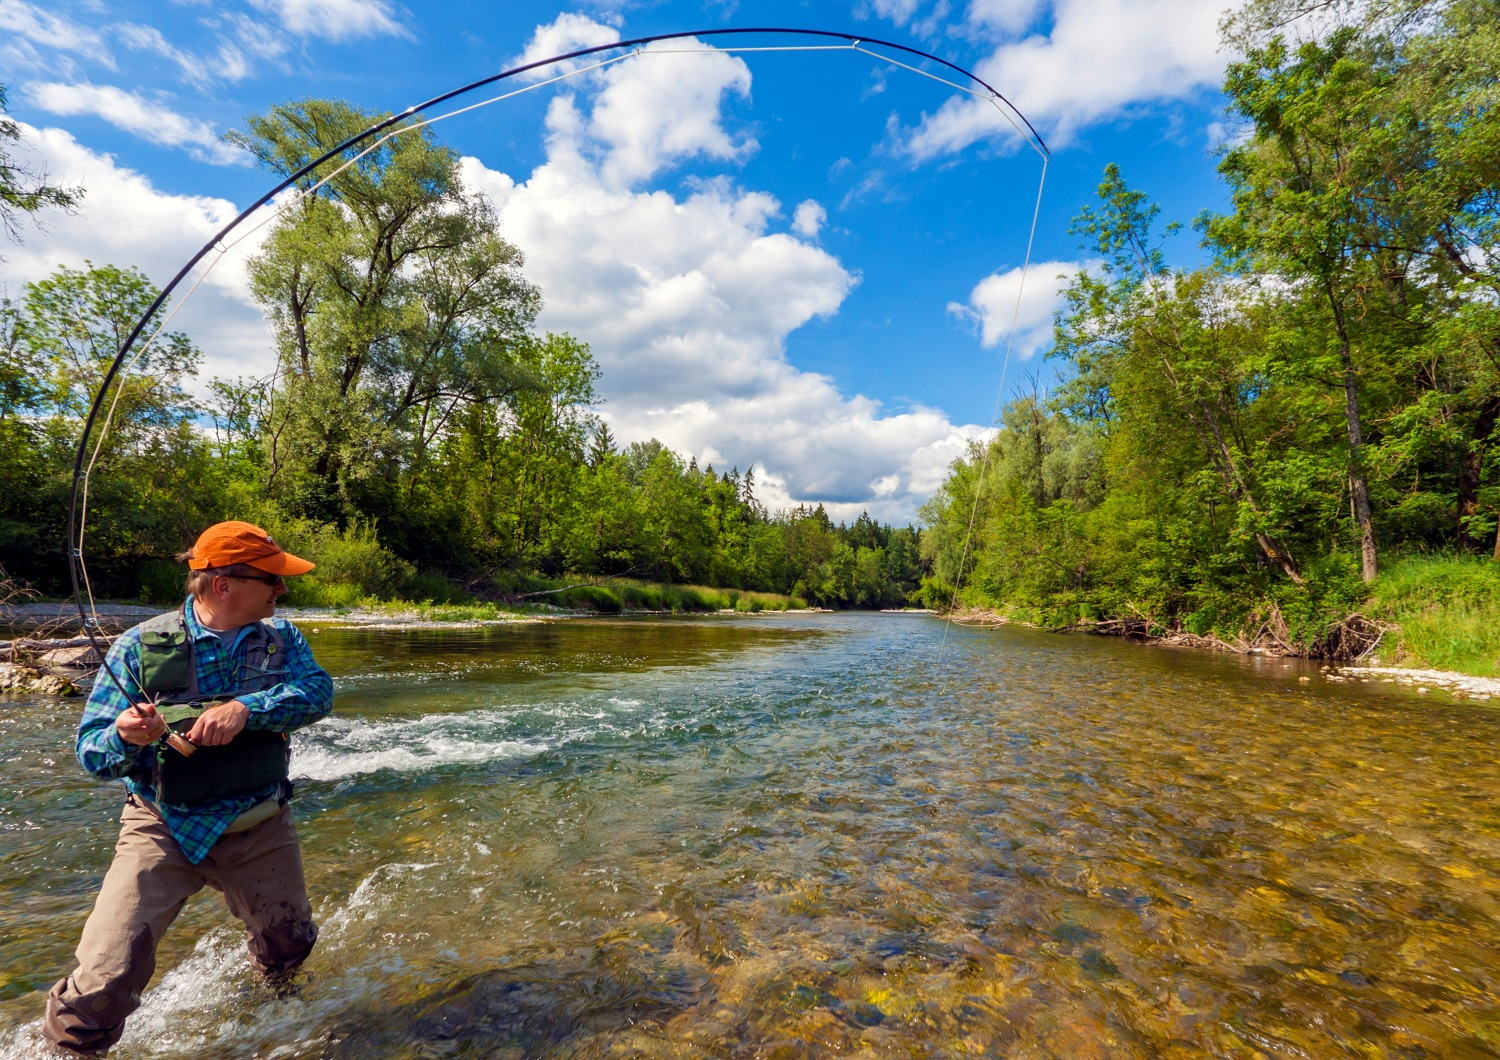 A fisherman is flyfishing in a beautiful River on a perfect Day.